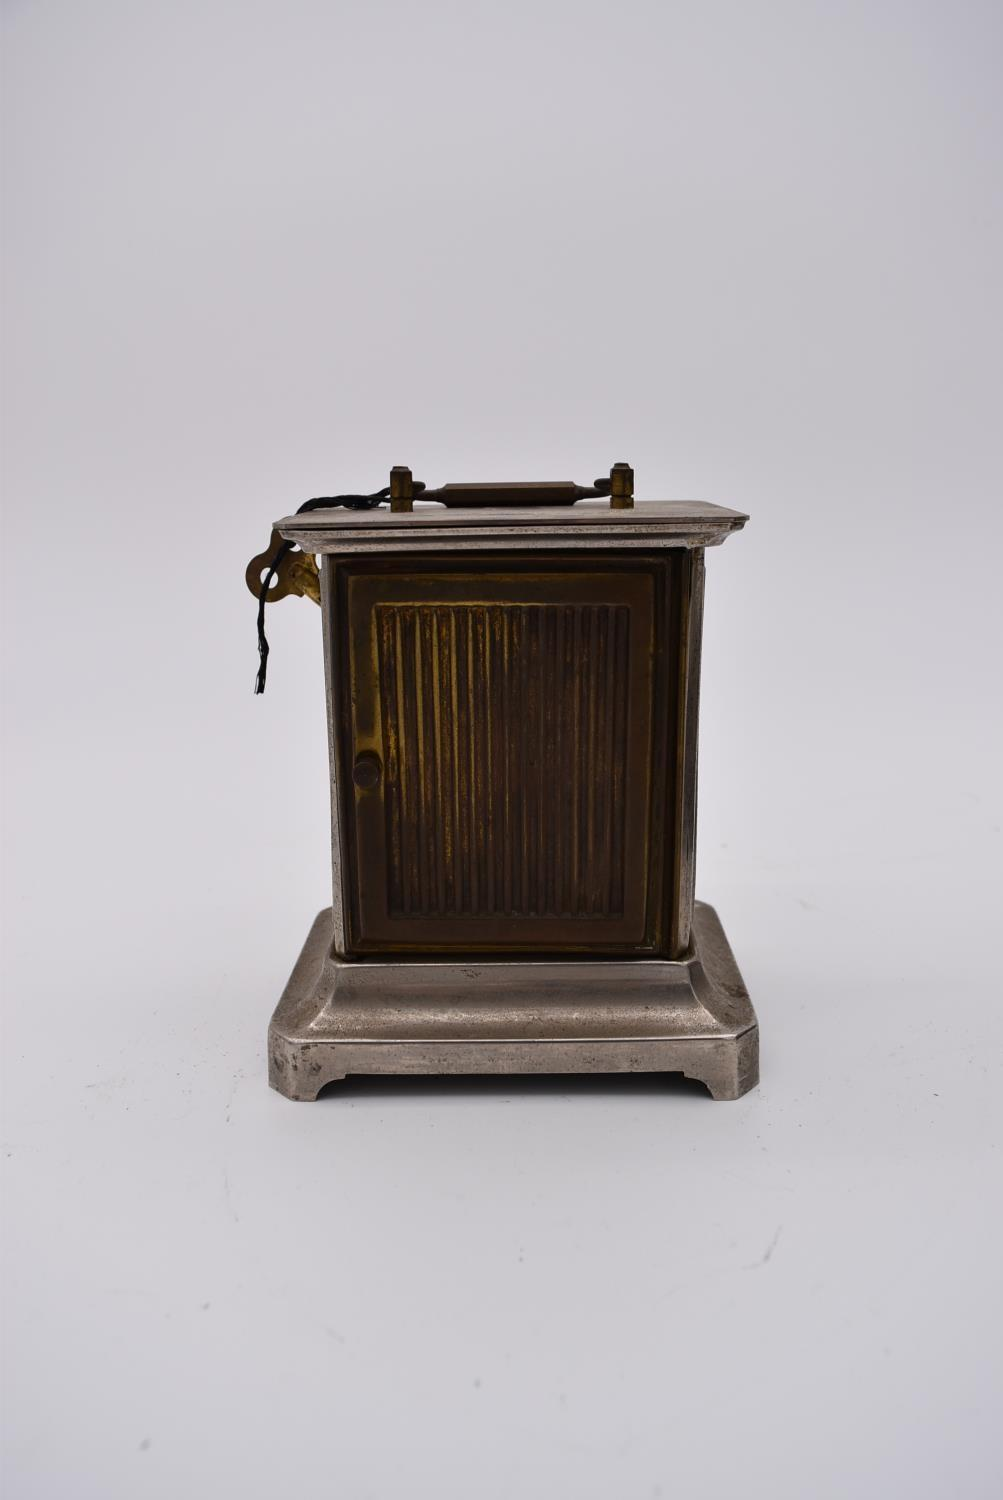 A brass cased carriage clock with engraved brass front with scrolling design and white enamel dial - Image 4 of 8